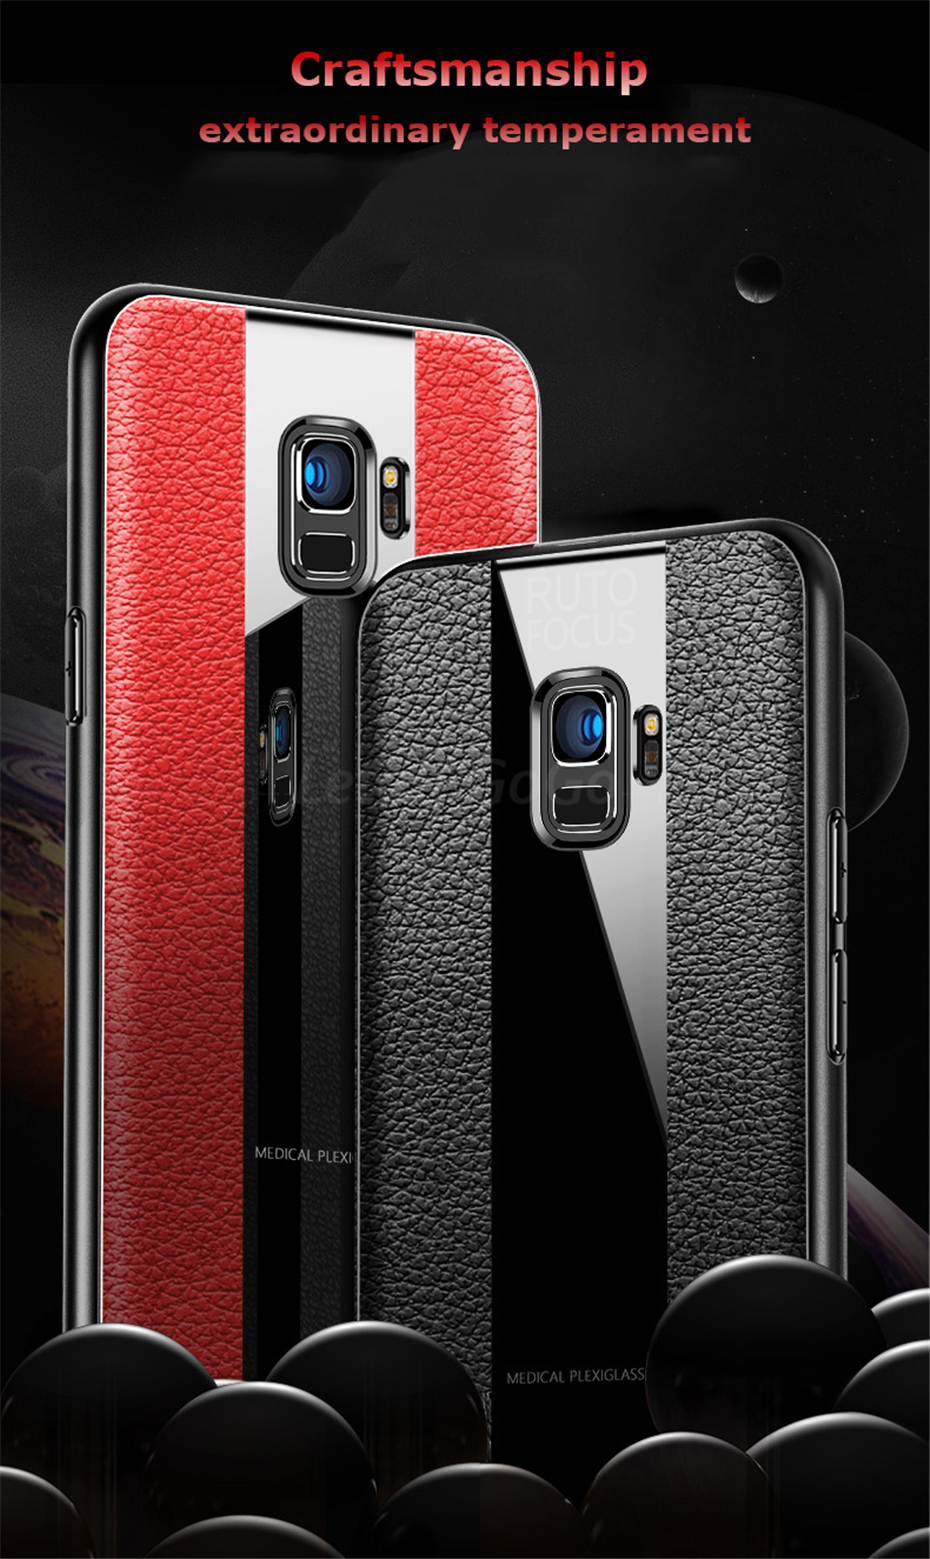 2 Galaxy S8.S8 Plus.S9.S9 Plus.Case Cover